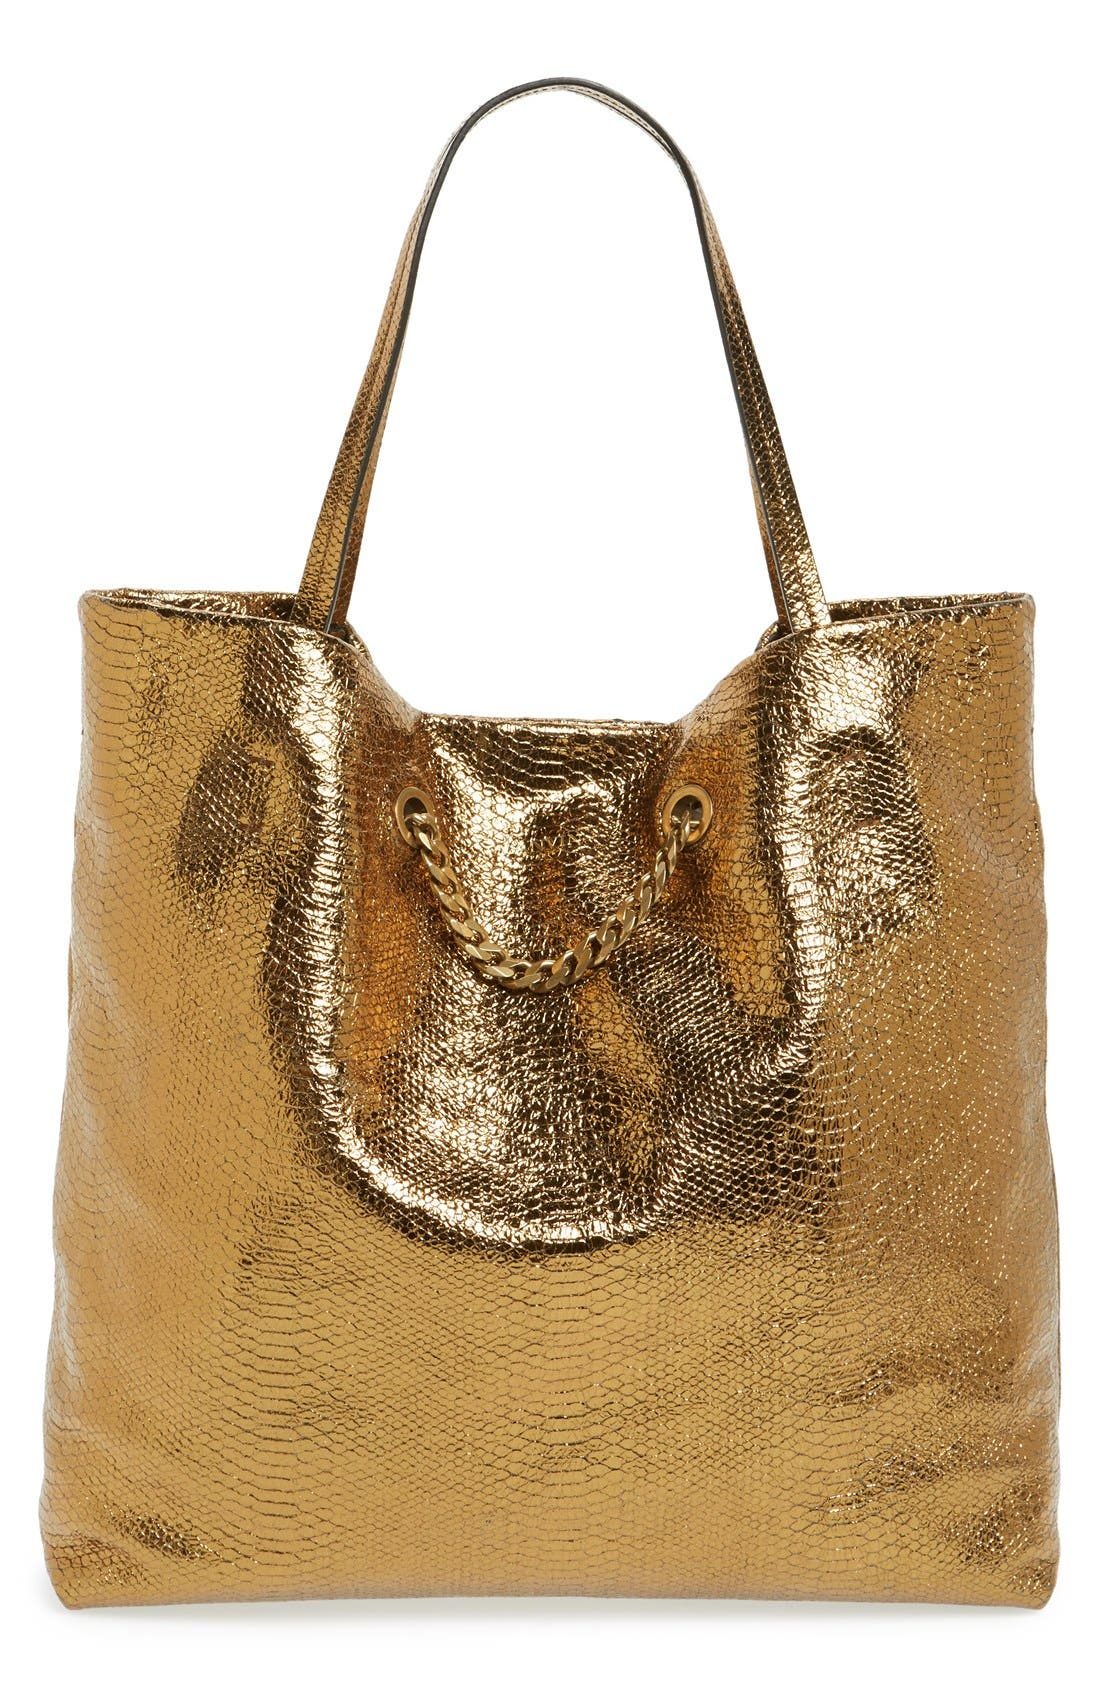 Main Image - Lanvin 'Medium Carry Me' Snake Embossed Metallic Leather Tote